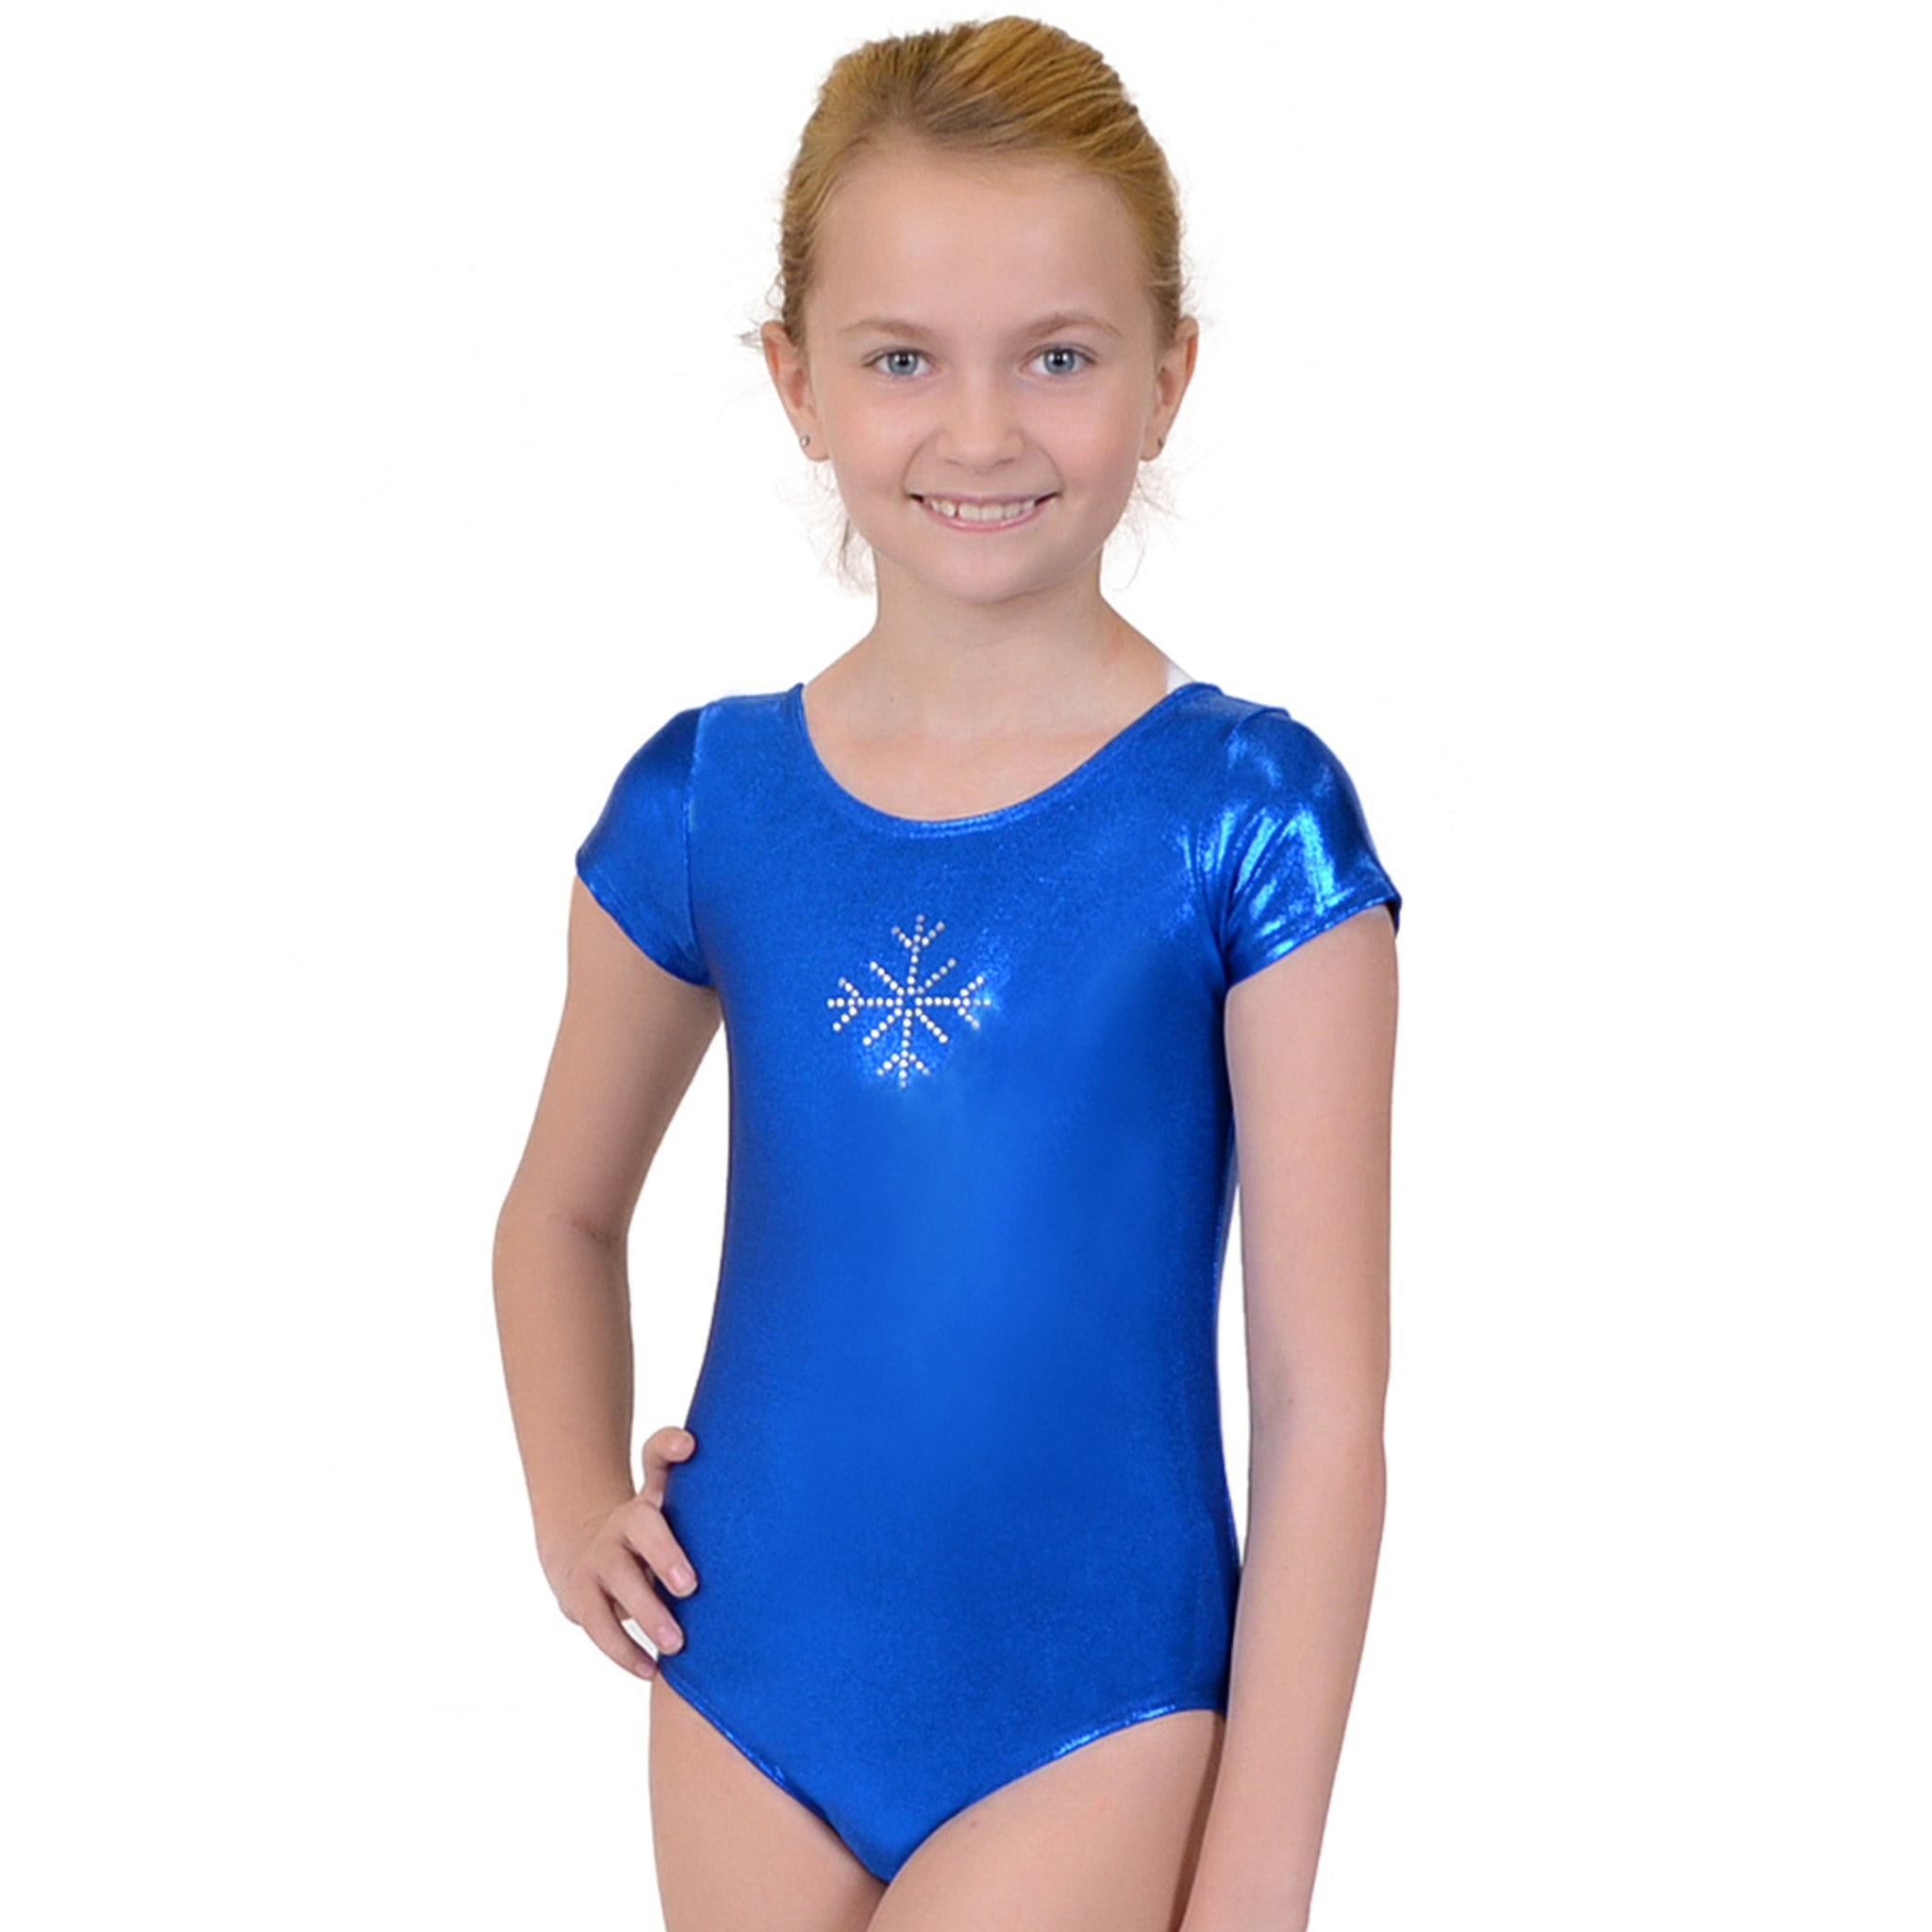 Girl's SNOWFLAKE RHINESTONE Mystique Spandex Leotards